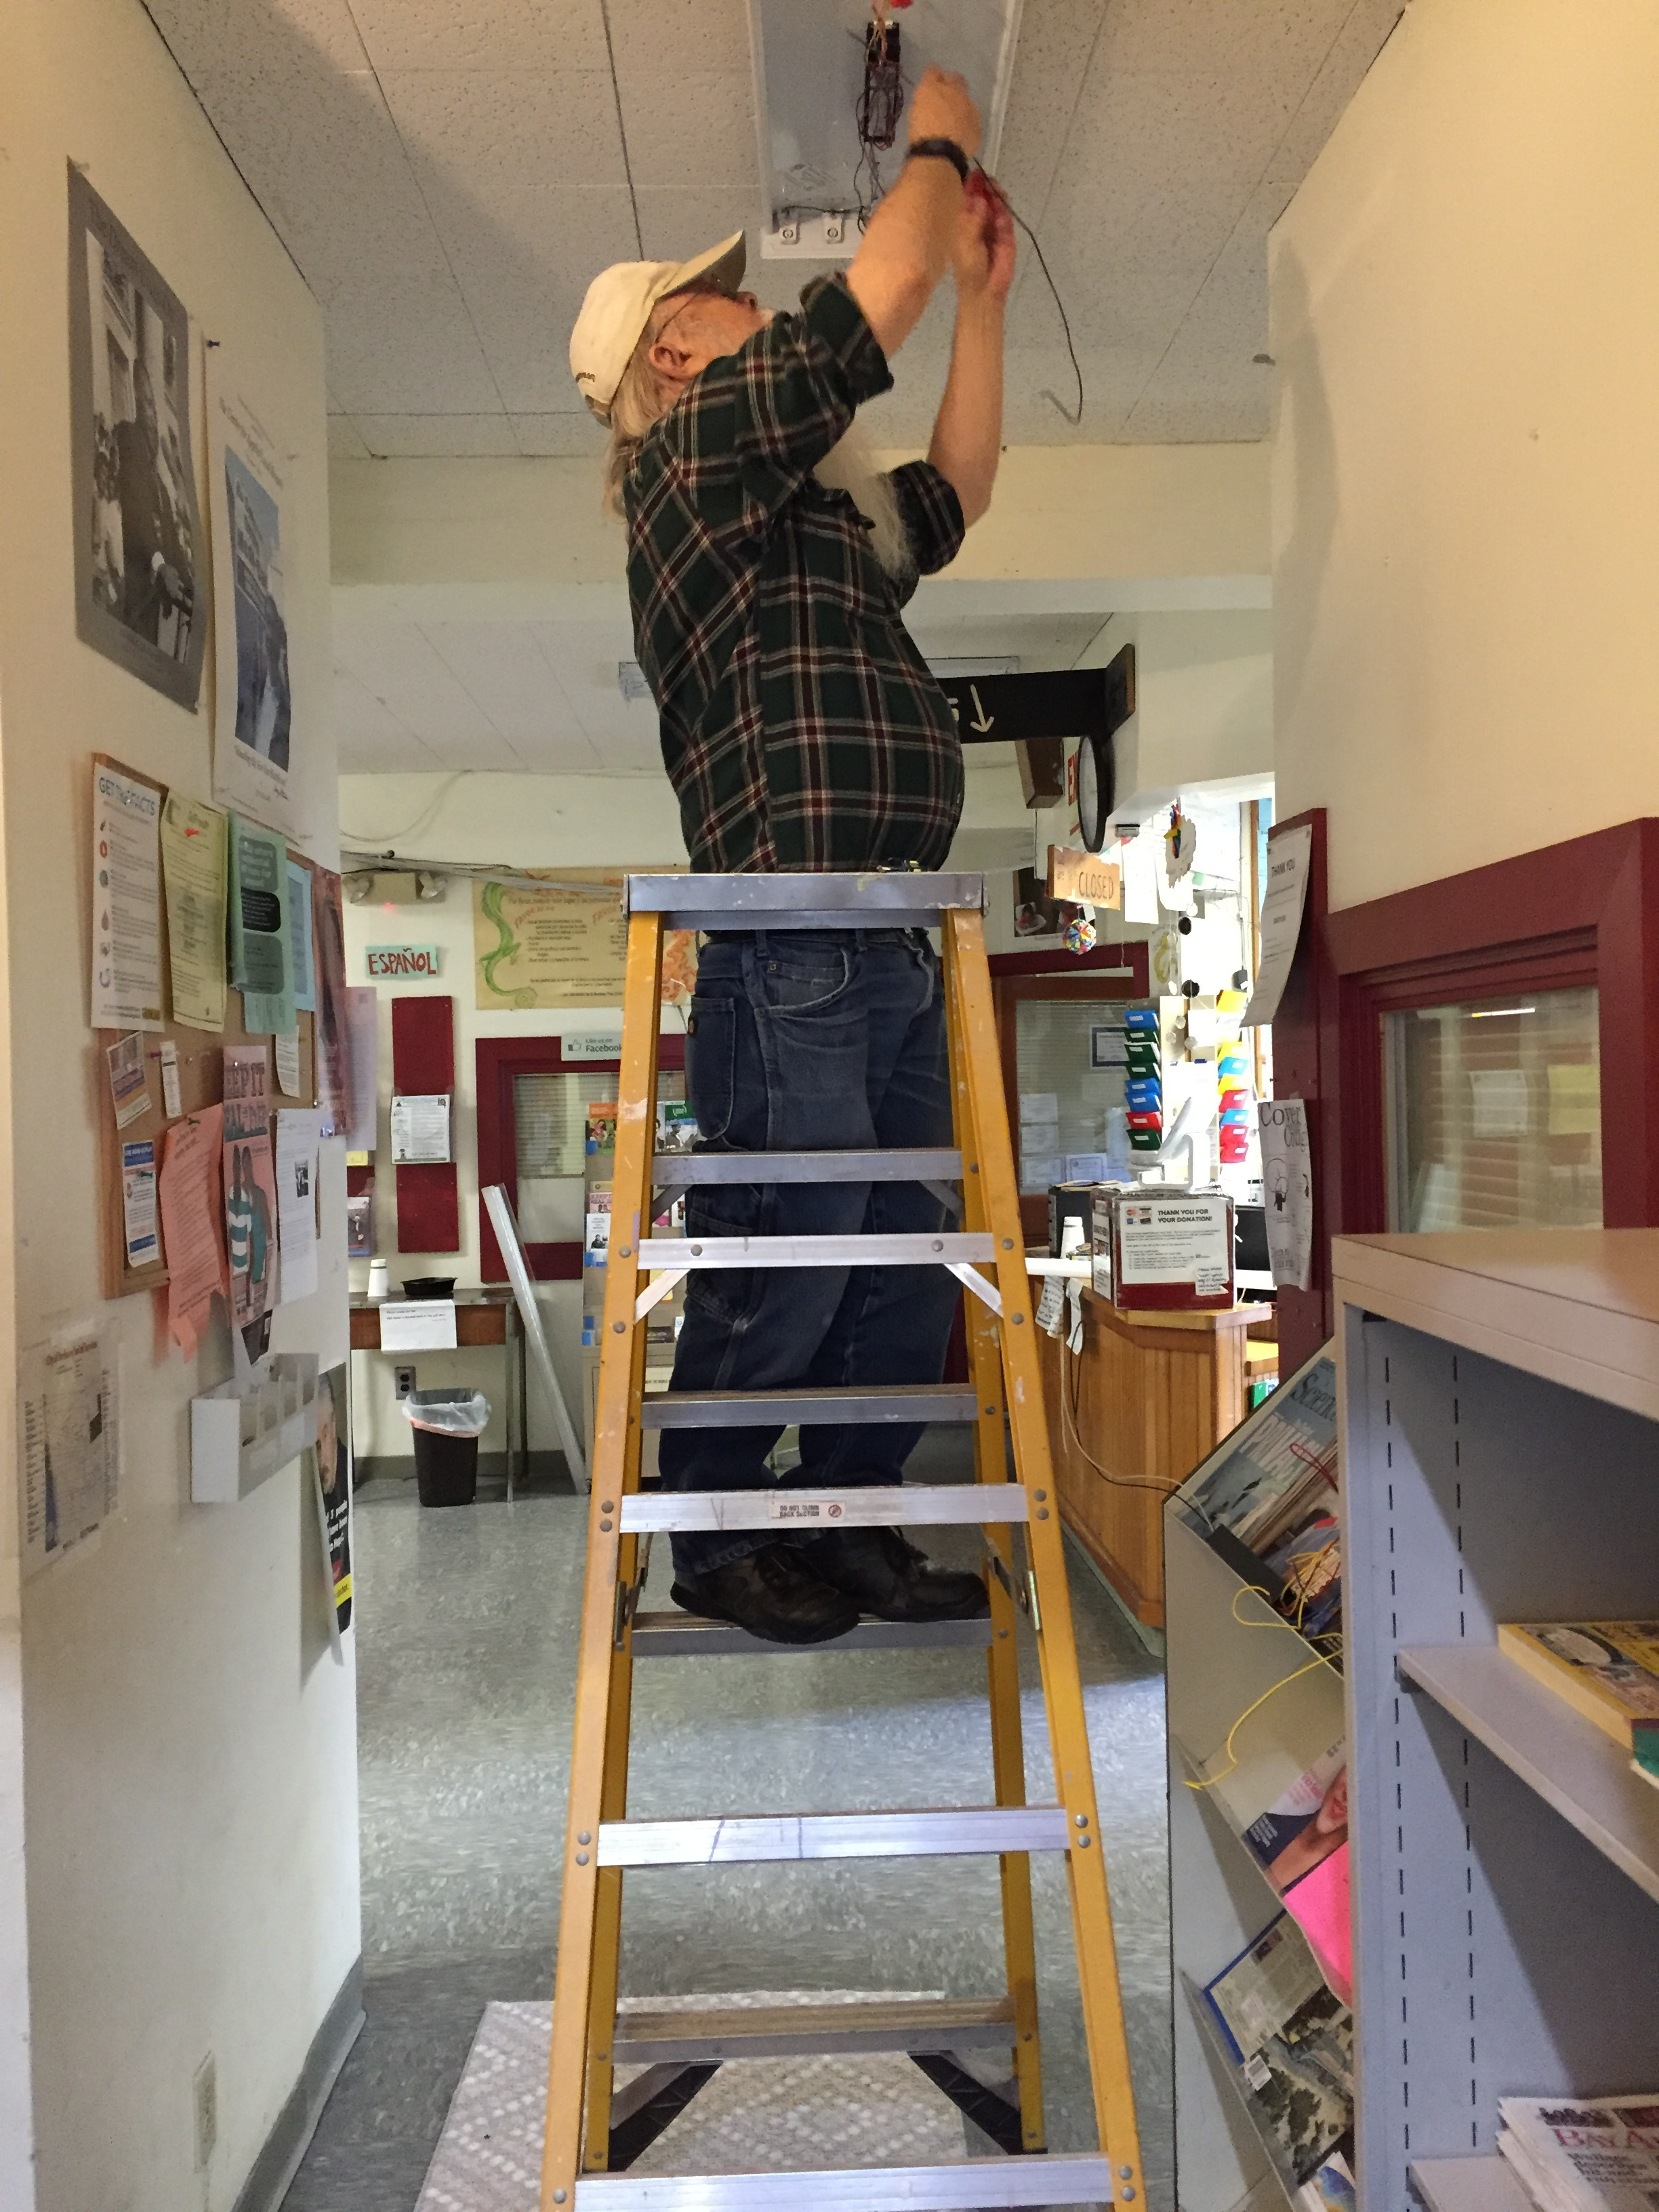 Long-time switchboard/IRC volunteer Tom K lends his skills to repair a light fixture before a shift